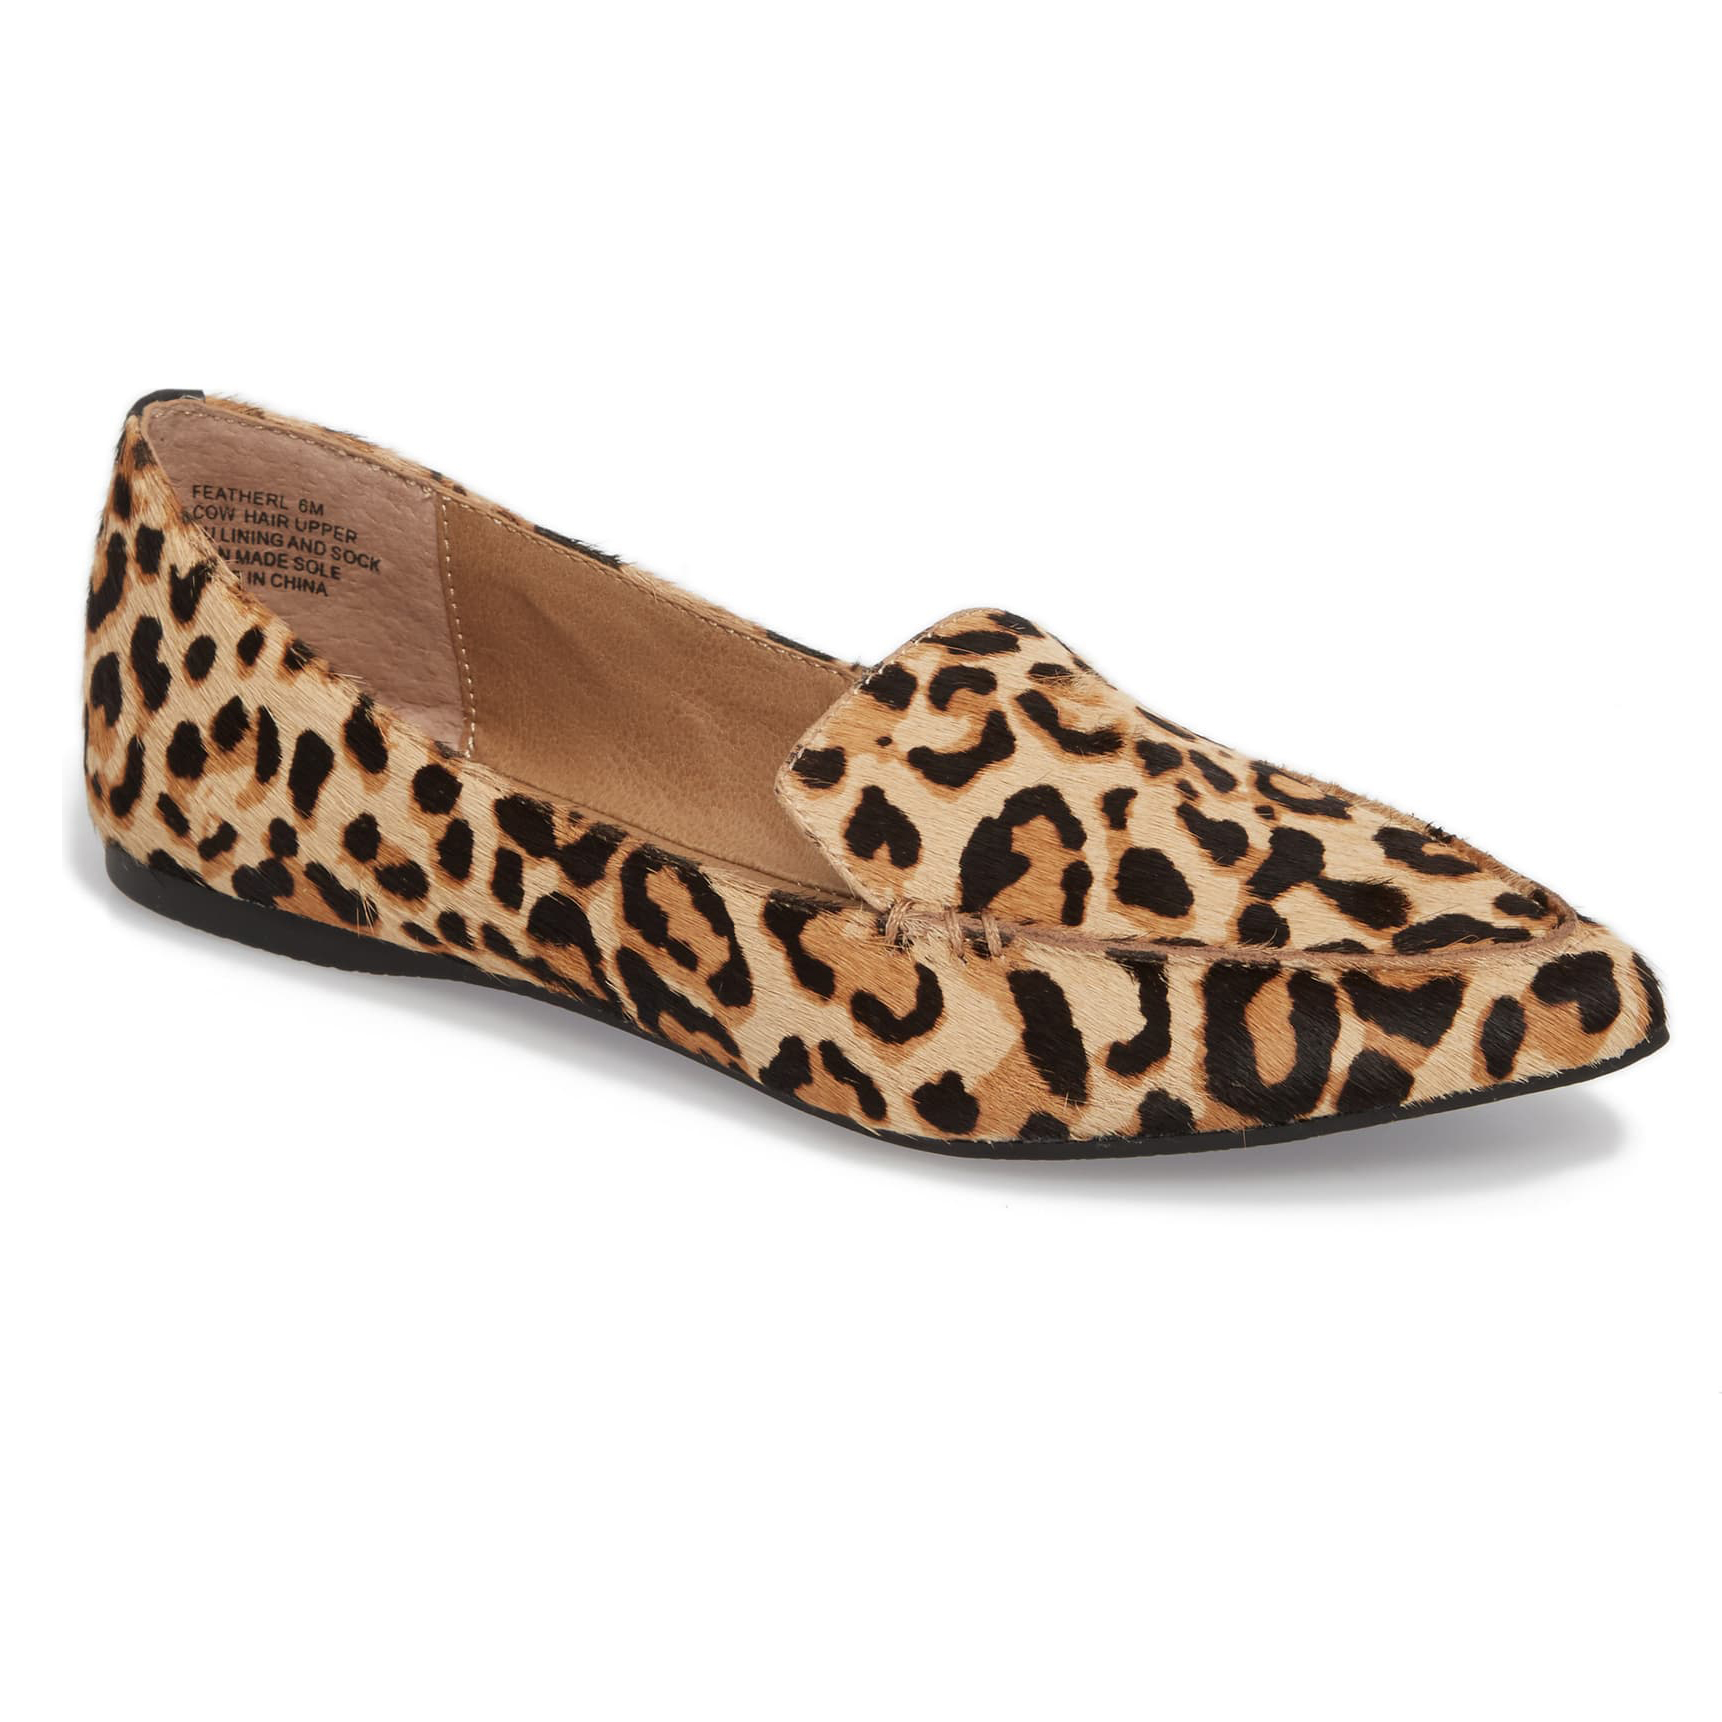 Steve Madden Feather-L Genuine Calf Hair Loafer Flat Leopard